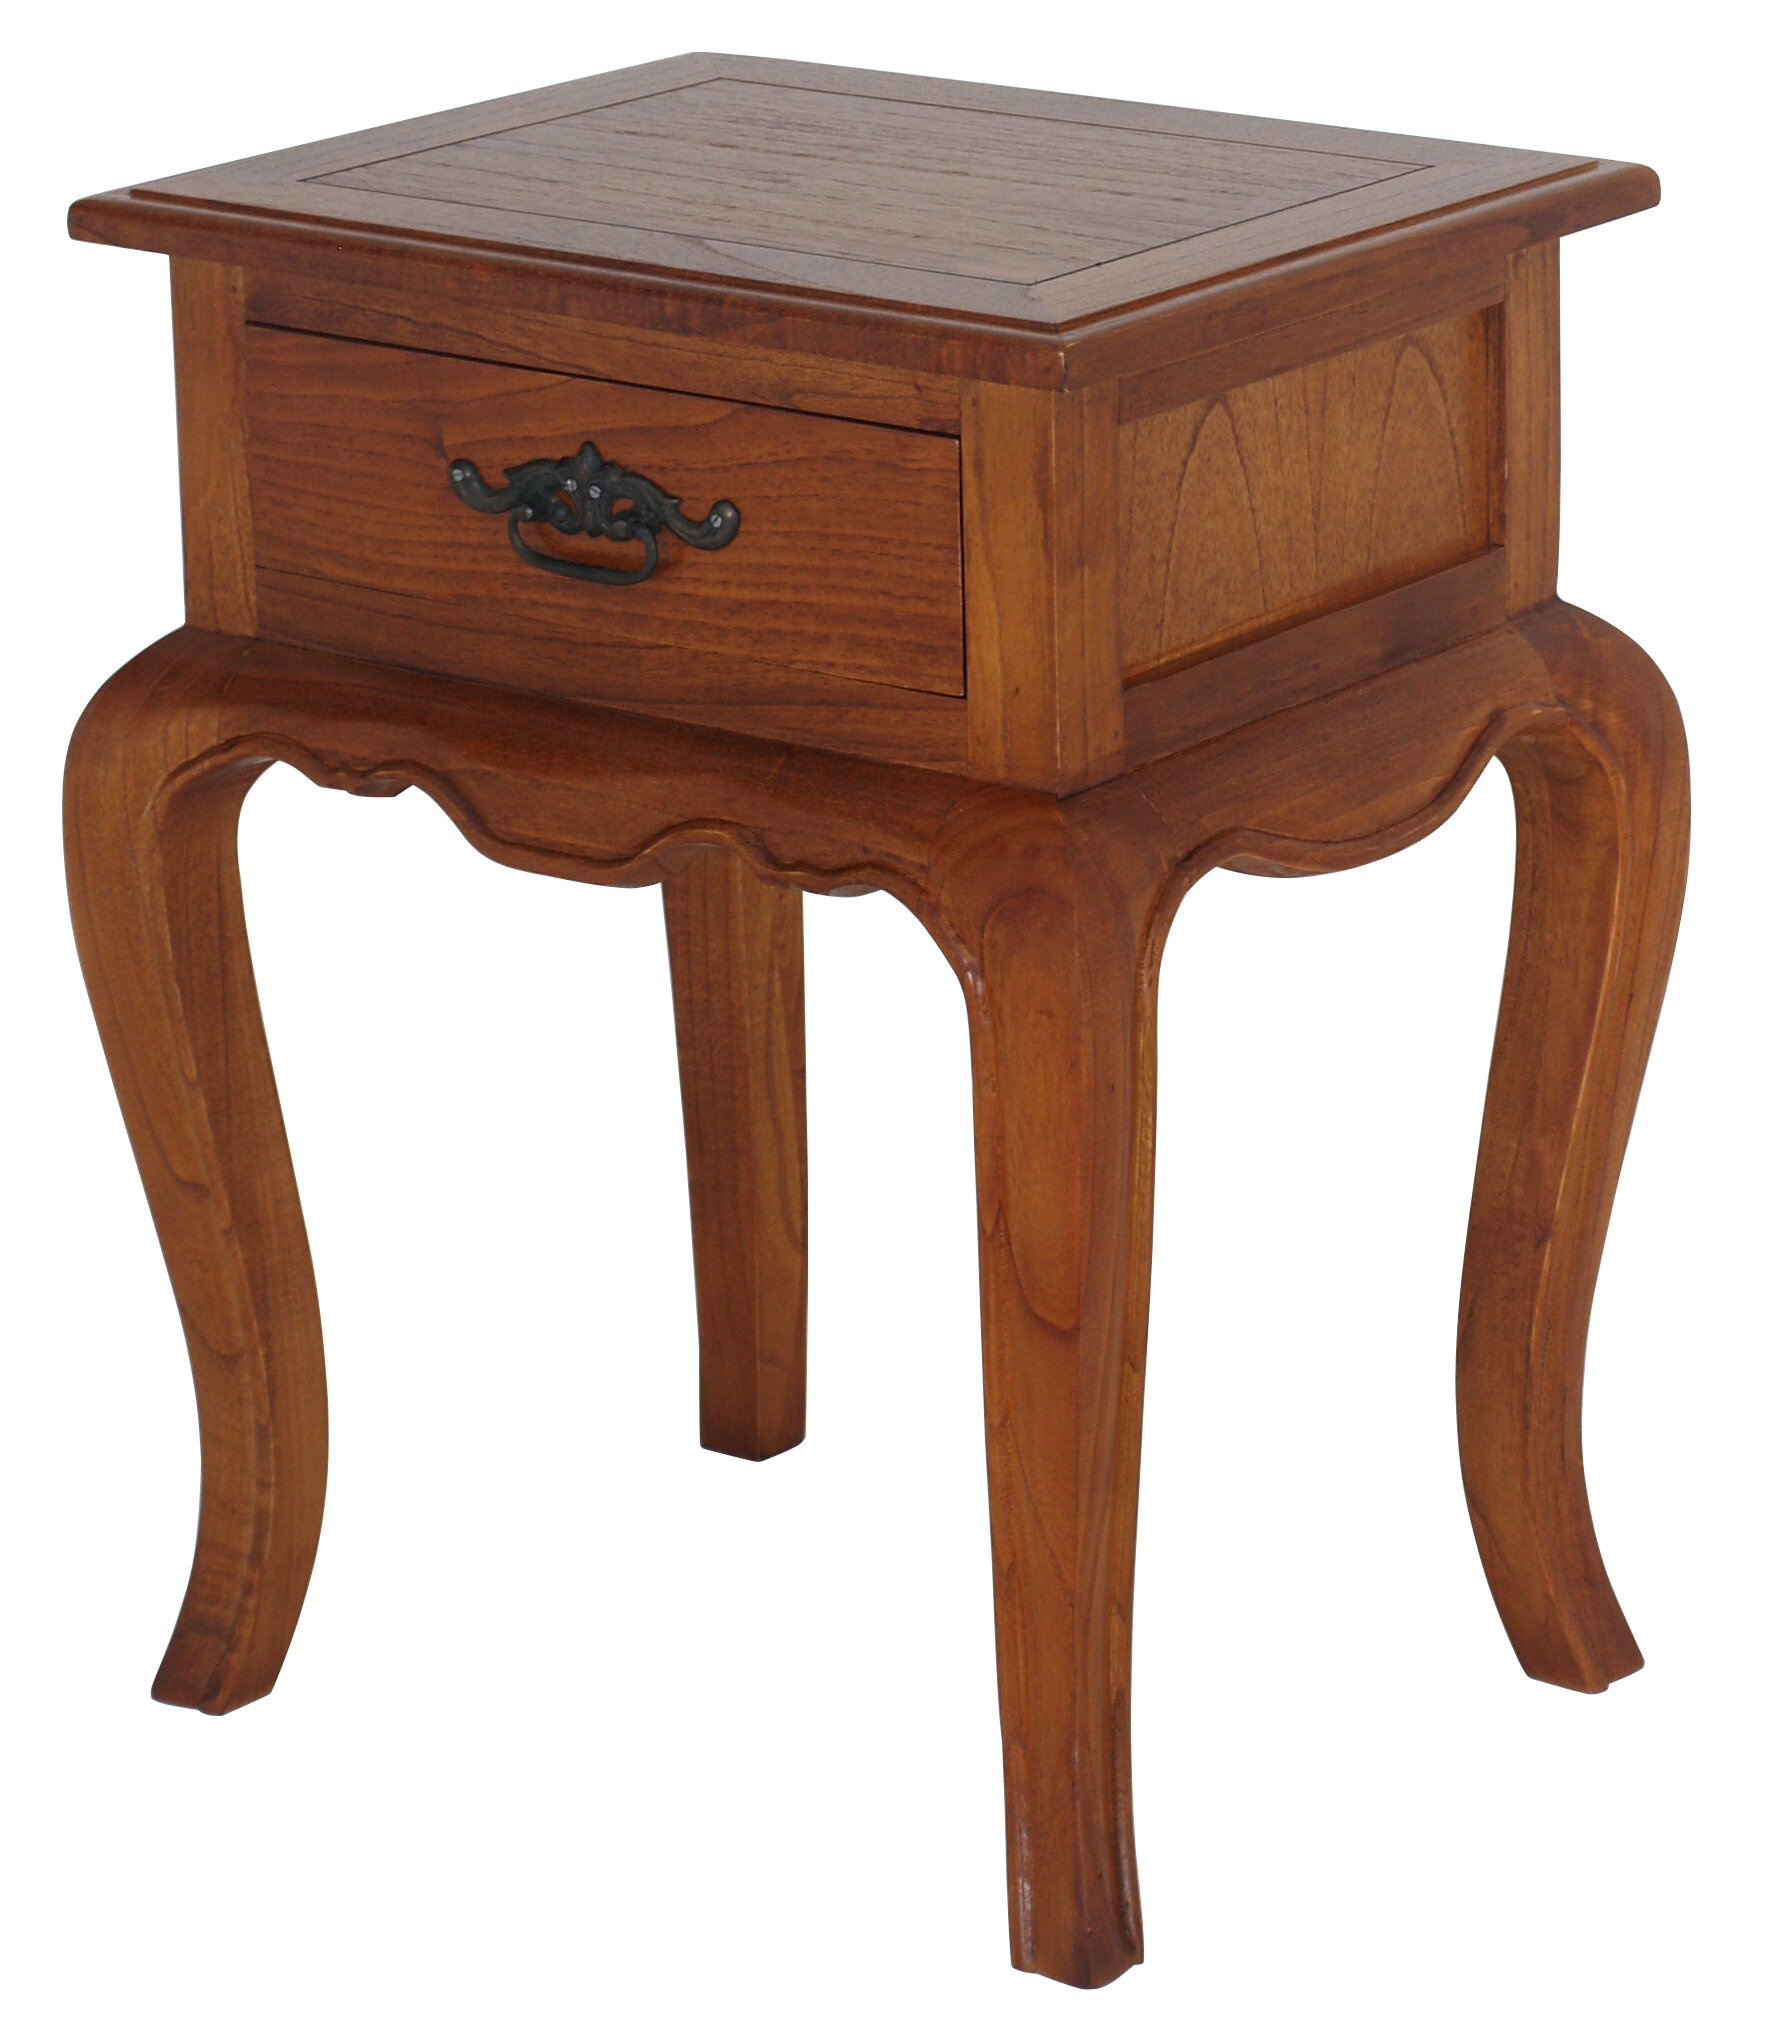 NES Furniture French Provincial Fine Handcrafted Solid Mahogany Wood Nightstand